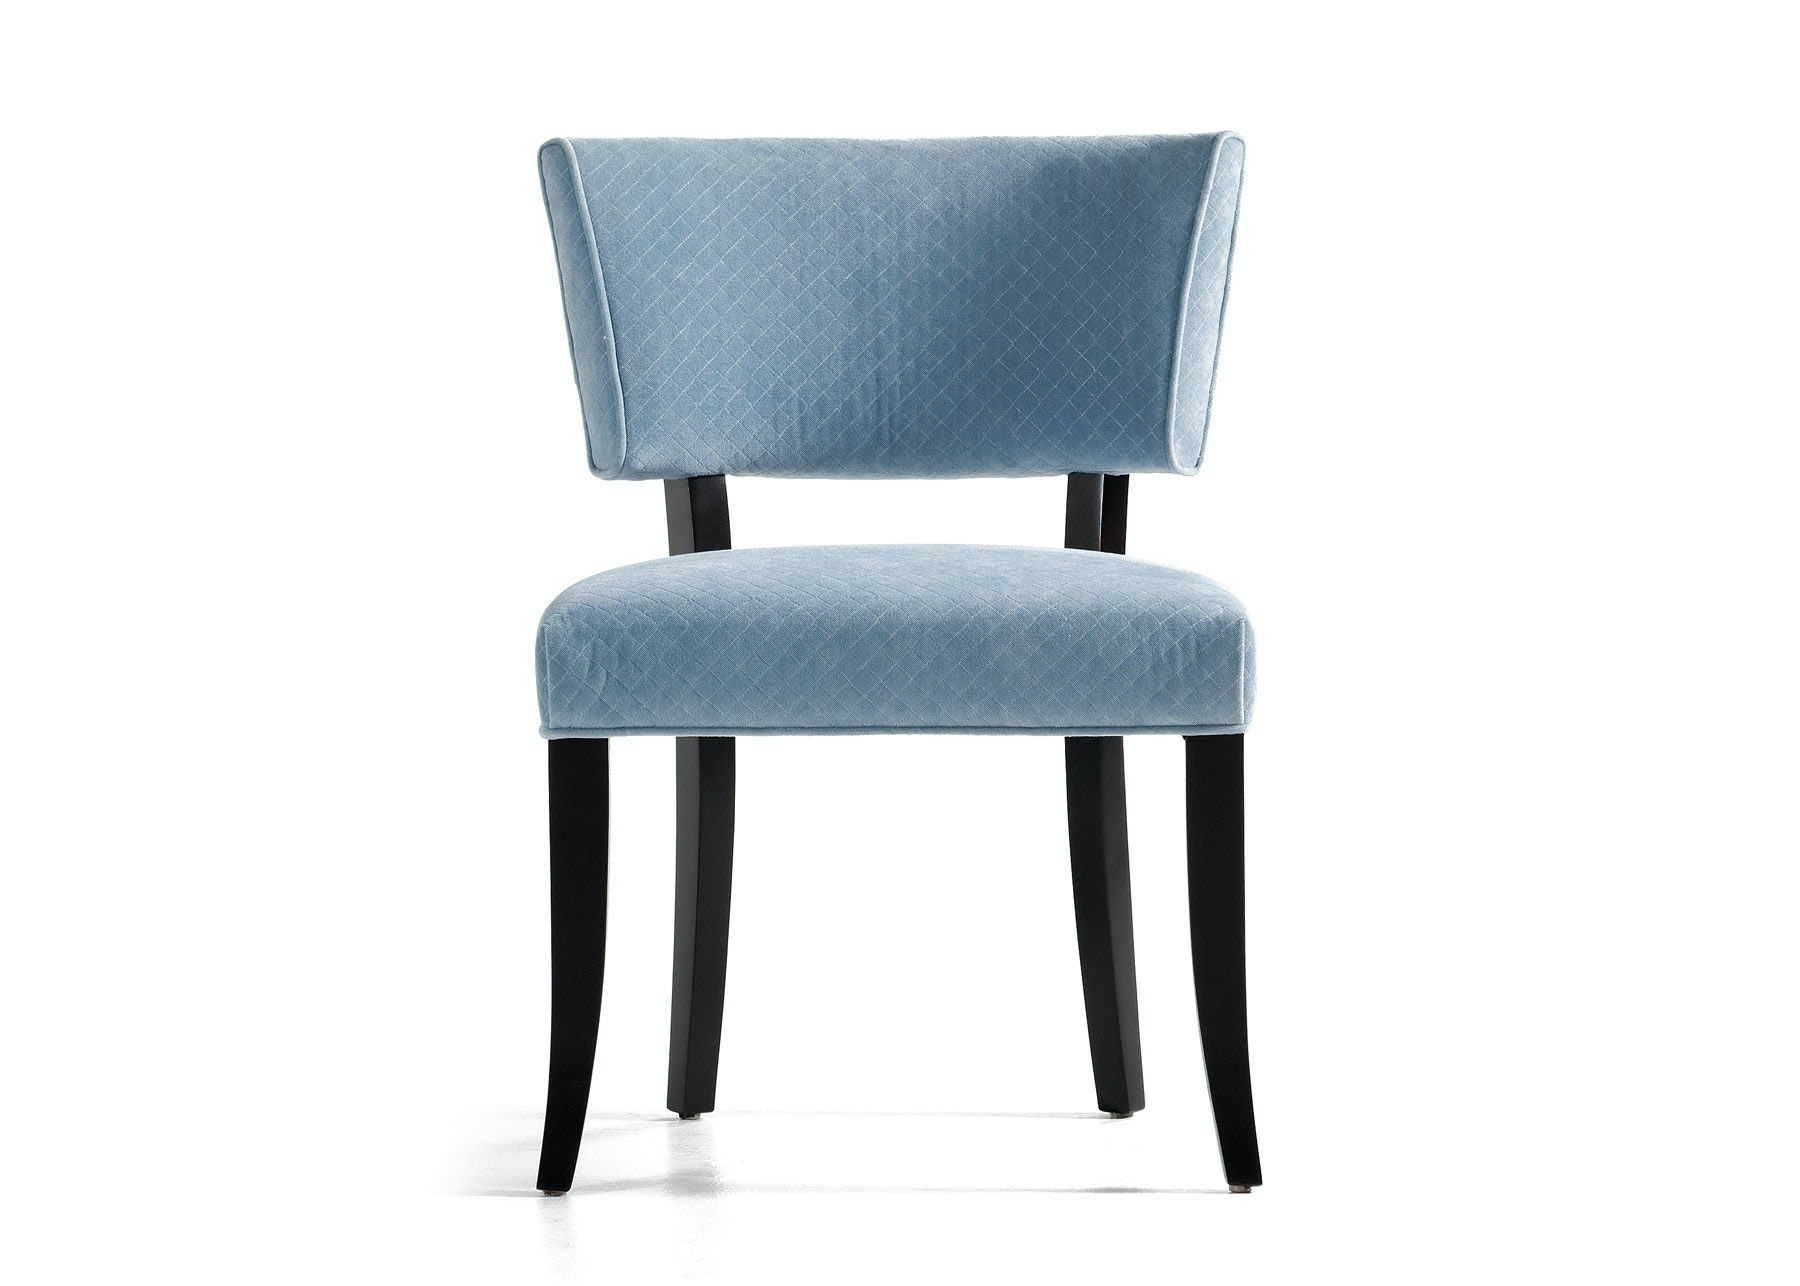 Jessica Charles Dining Room Maxine Dining Chair 1984 - Alyson Jon Interiors - Houston and ...